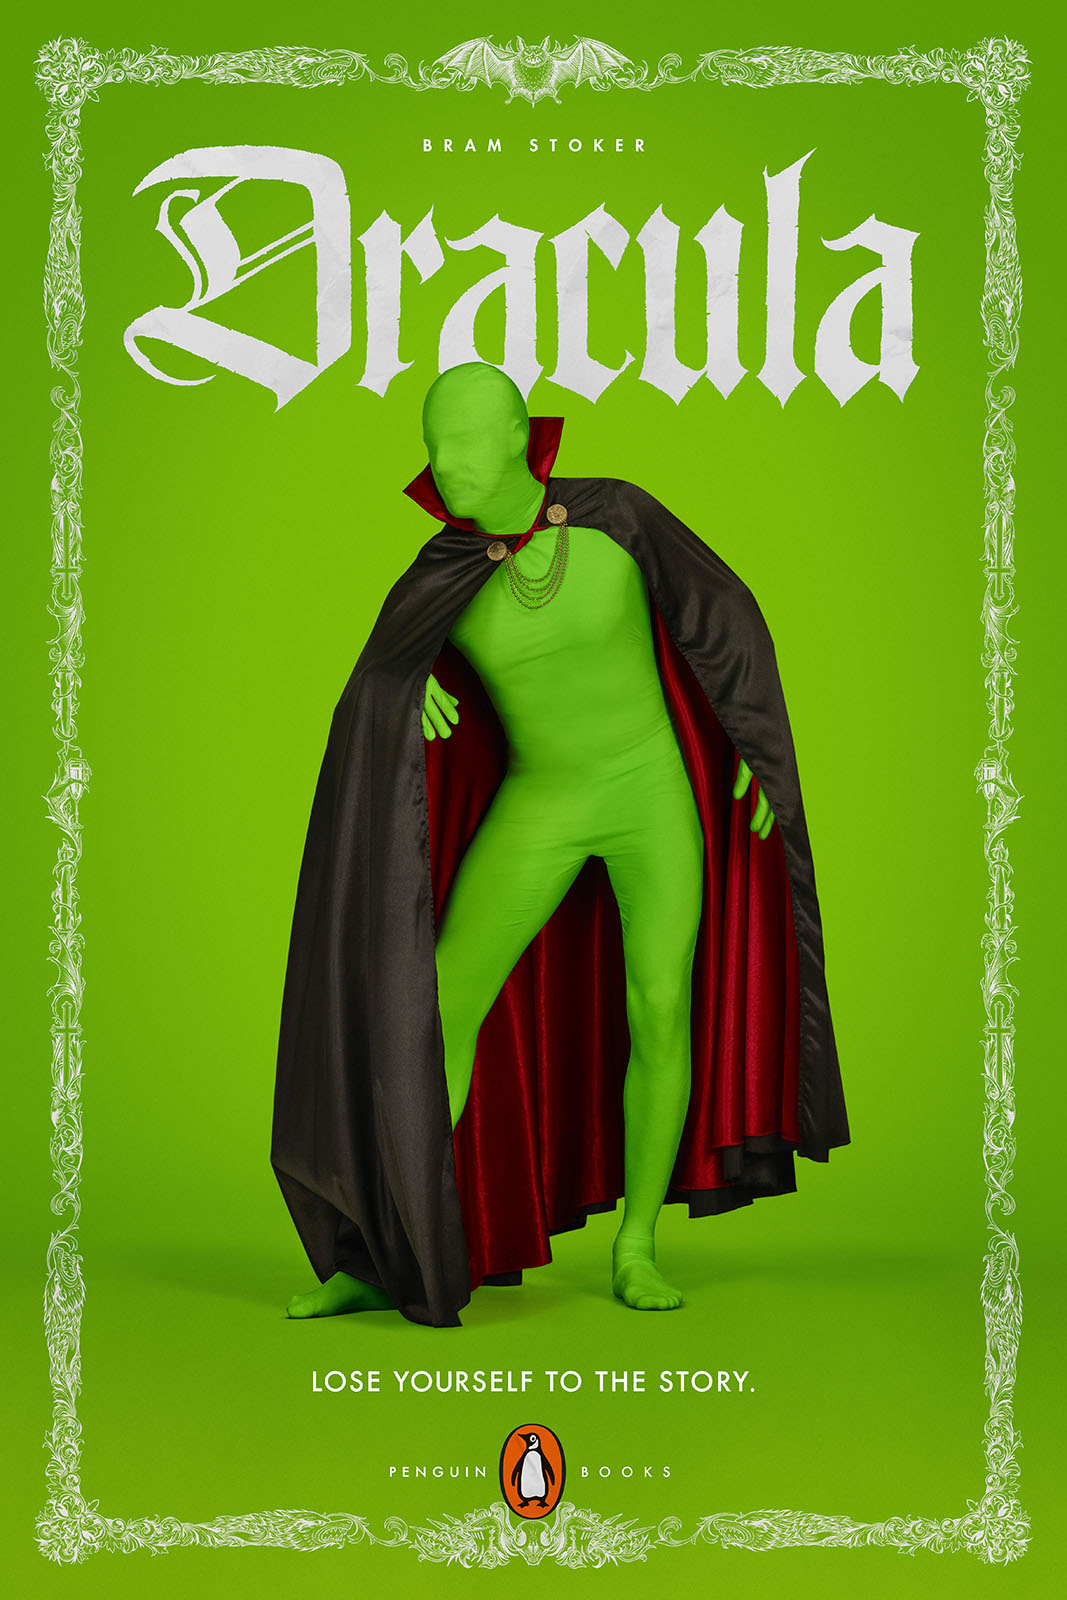 penguin-books-chroma-key-macacolandia-dracula